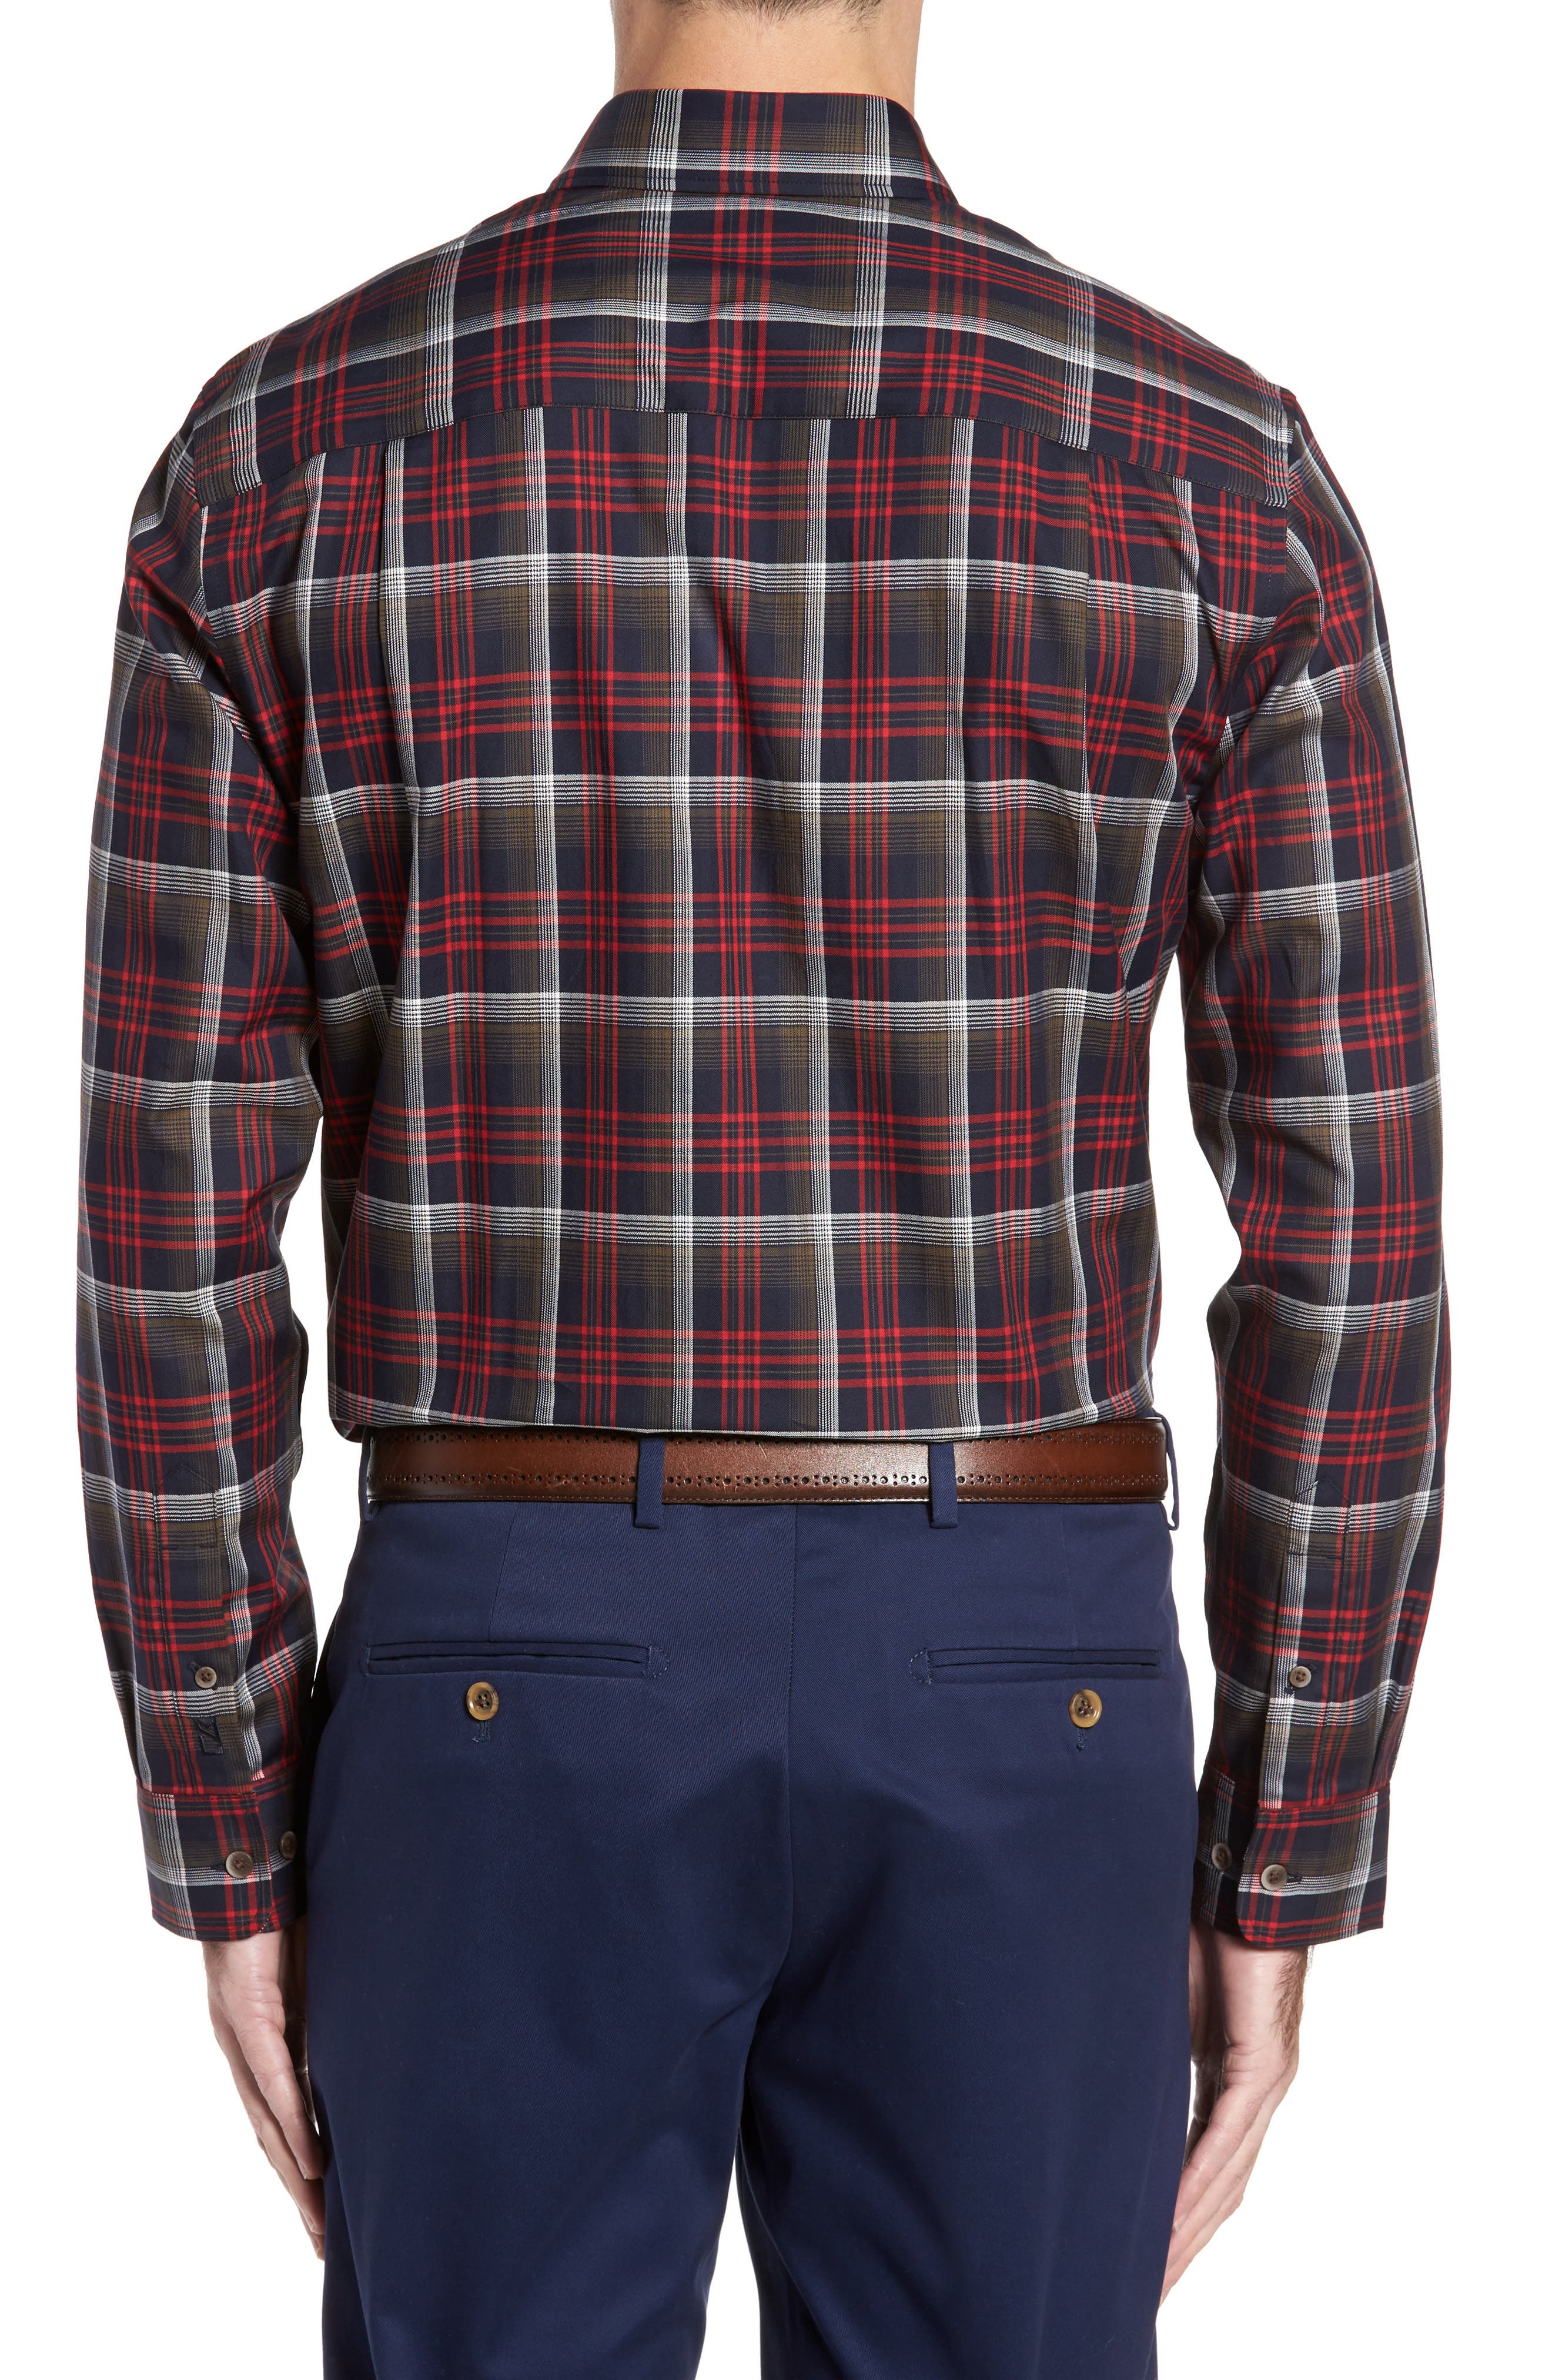 Dry Creek Non-Iron Plaid Sport Shirt,                             Alternate thumbnail 2, color,                             622